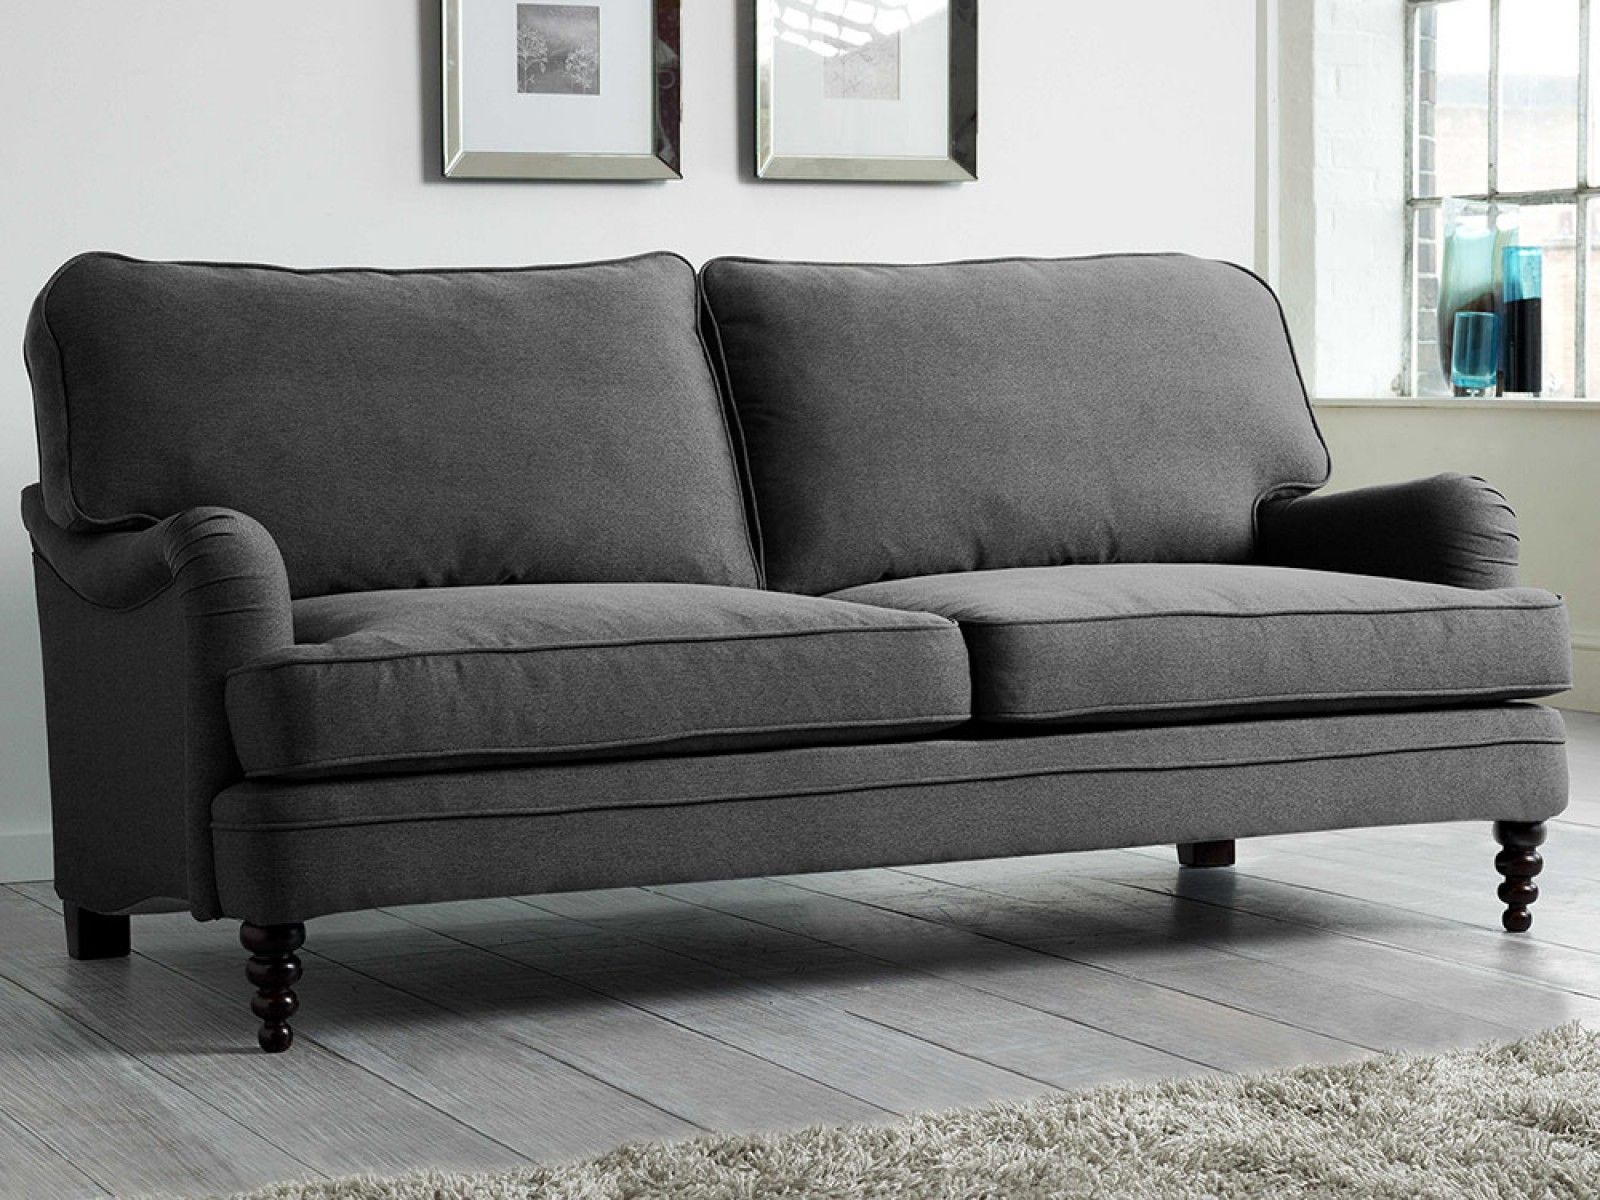 Lucille Sofa Upholstered Sofa Contemporary Bed Modern Bed